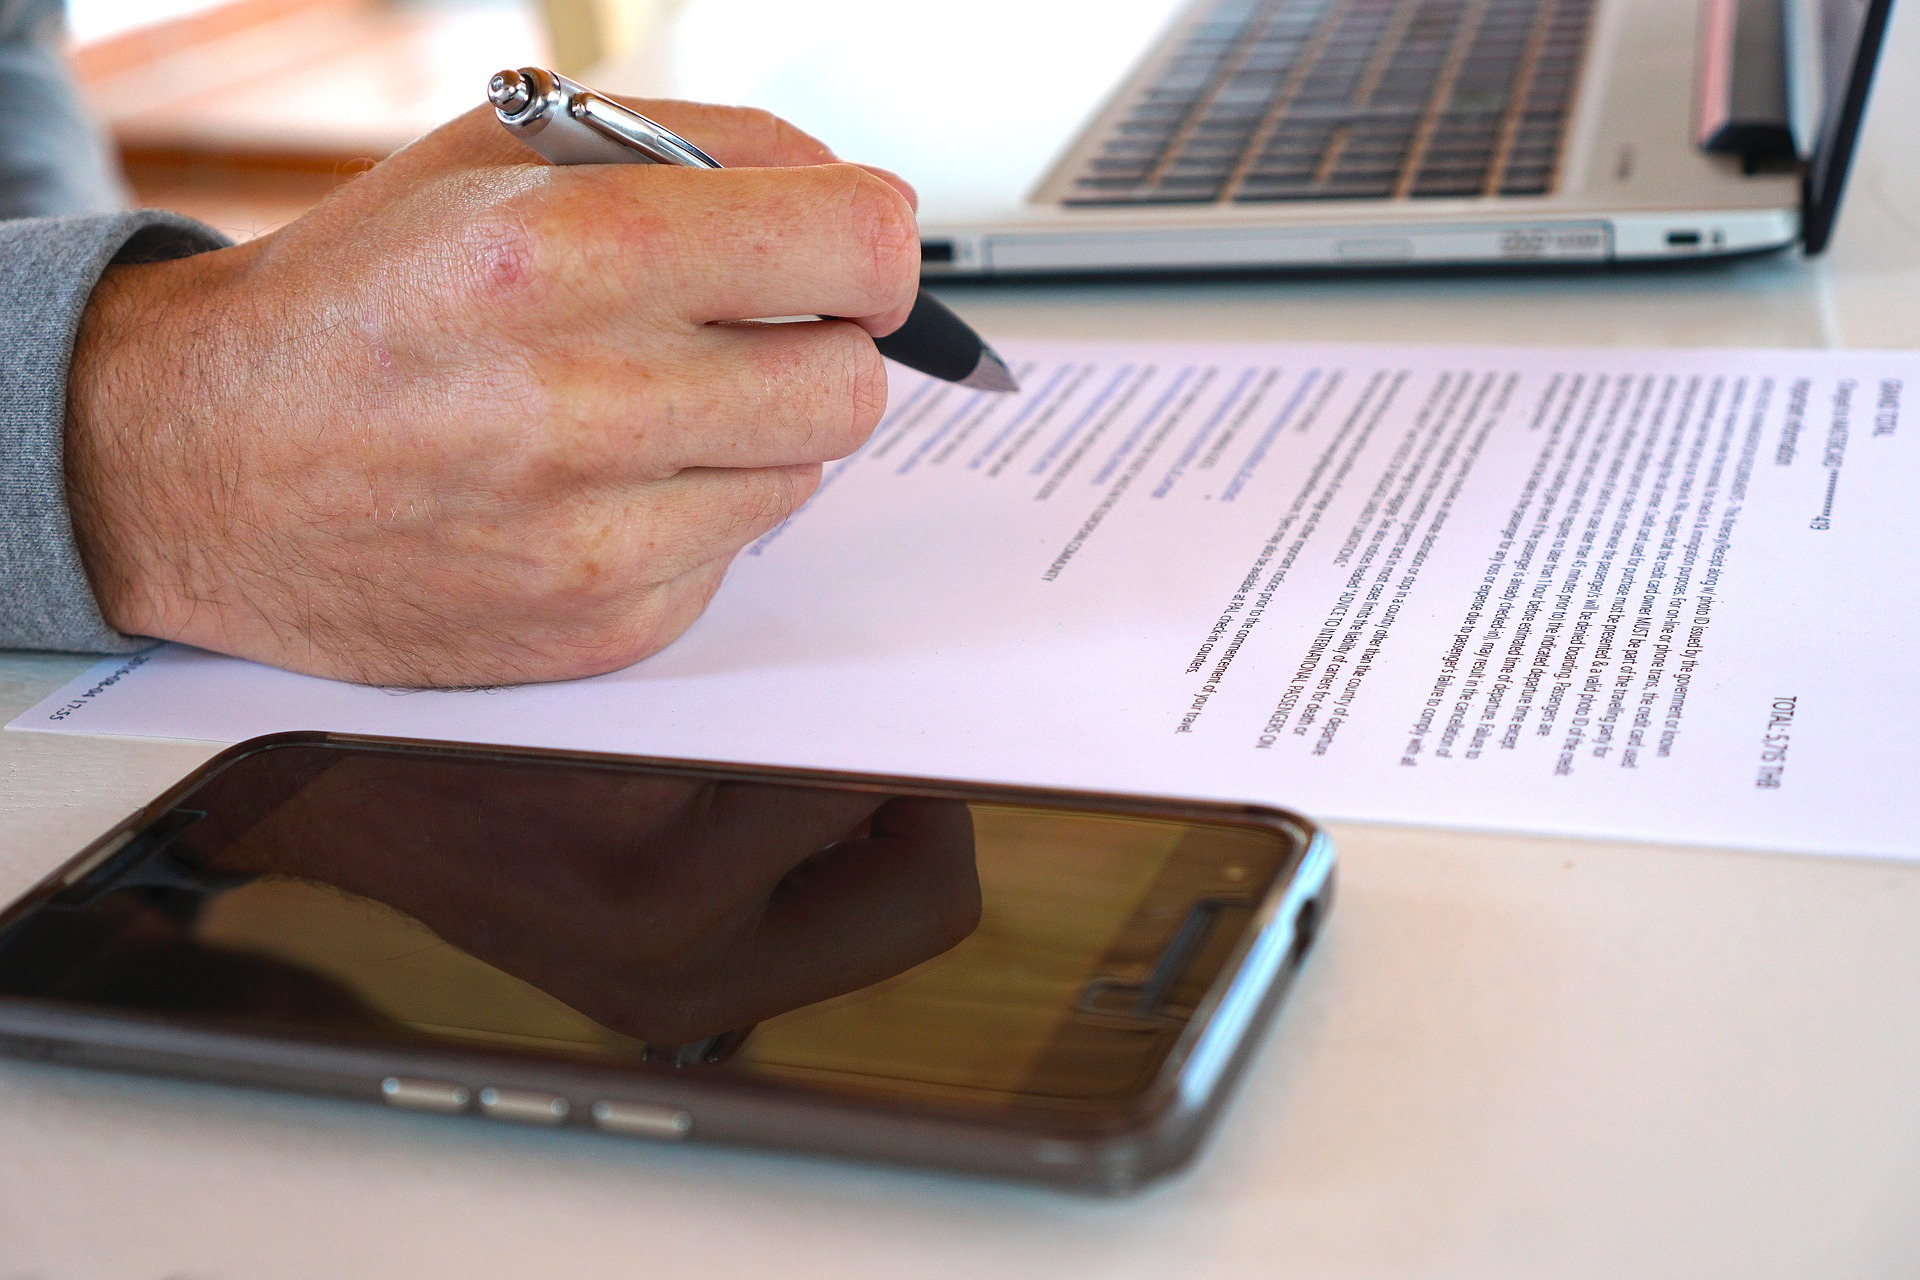 The Real Estate Contract: What is the earnest money deposit and how much should it be?